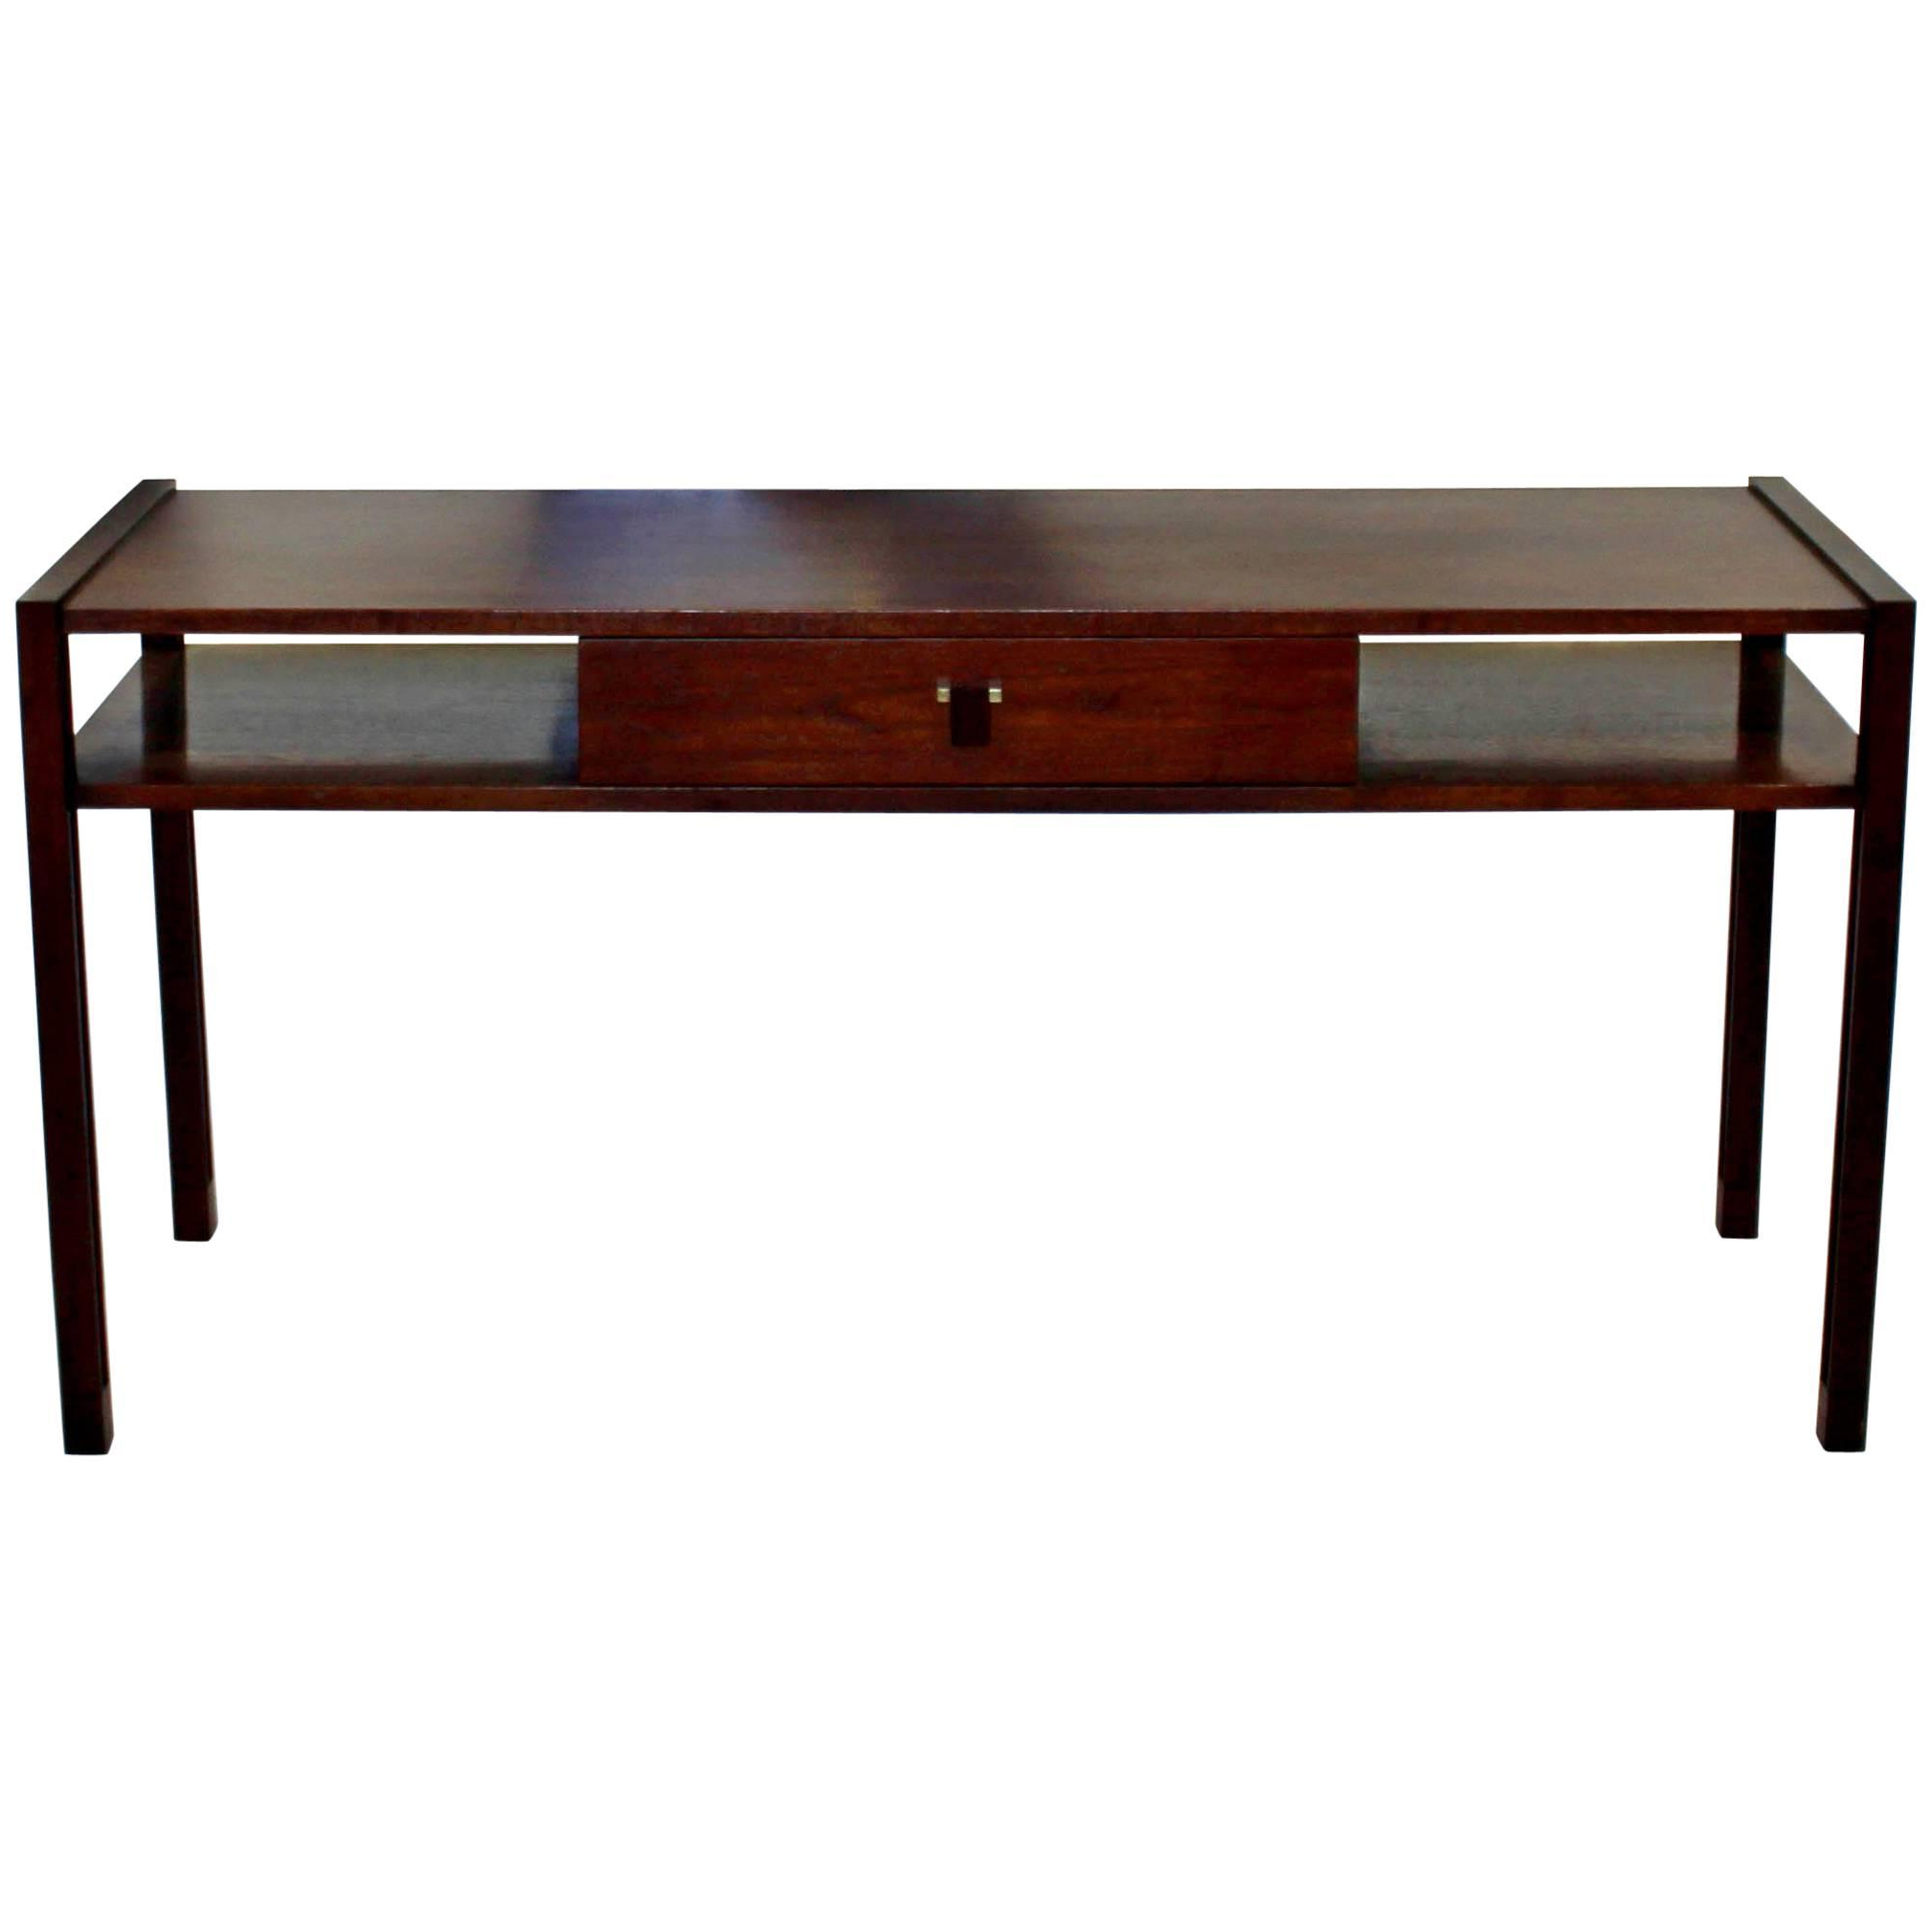 Dunbar Furniture Console Tables – 25 For Sale At 1stdibs Inside Oak & Brass Stacking Media Console Tables (View 15 of 20)